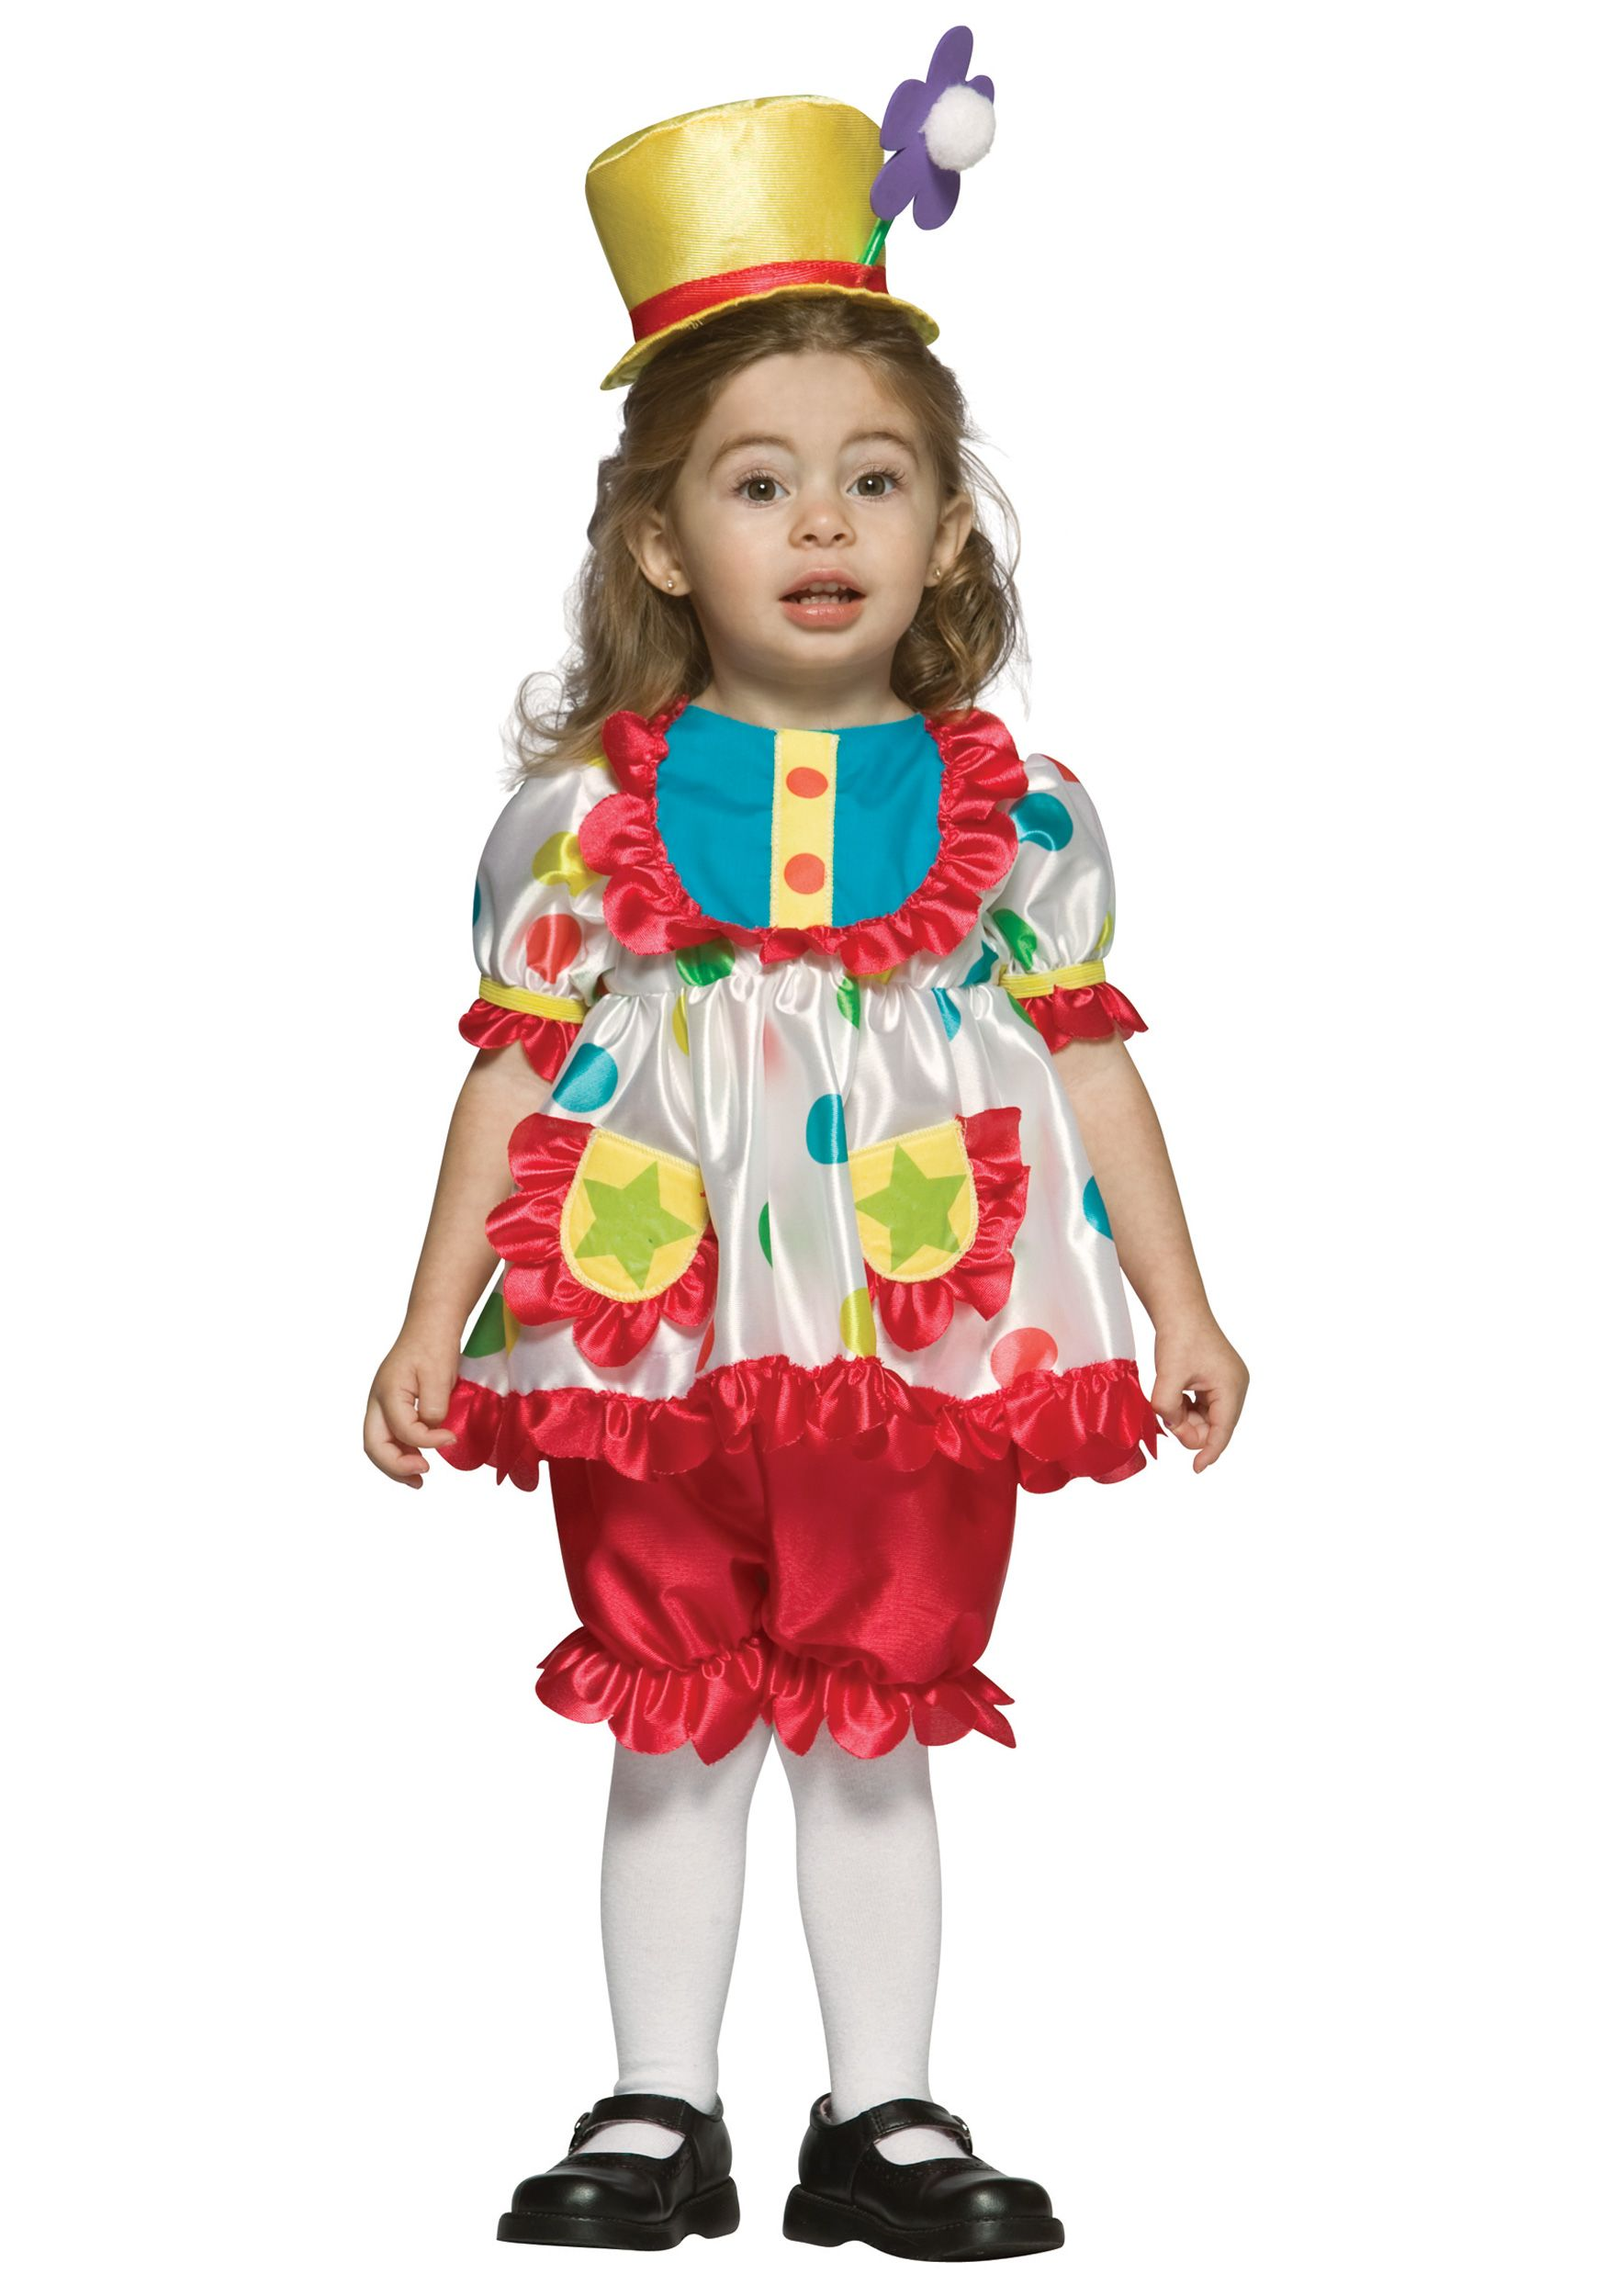 toddler fuzzy lil puppy costume girl clown costumeclown halloween - Girl Clown Halloween Costumes